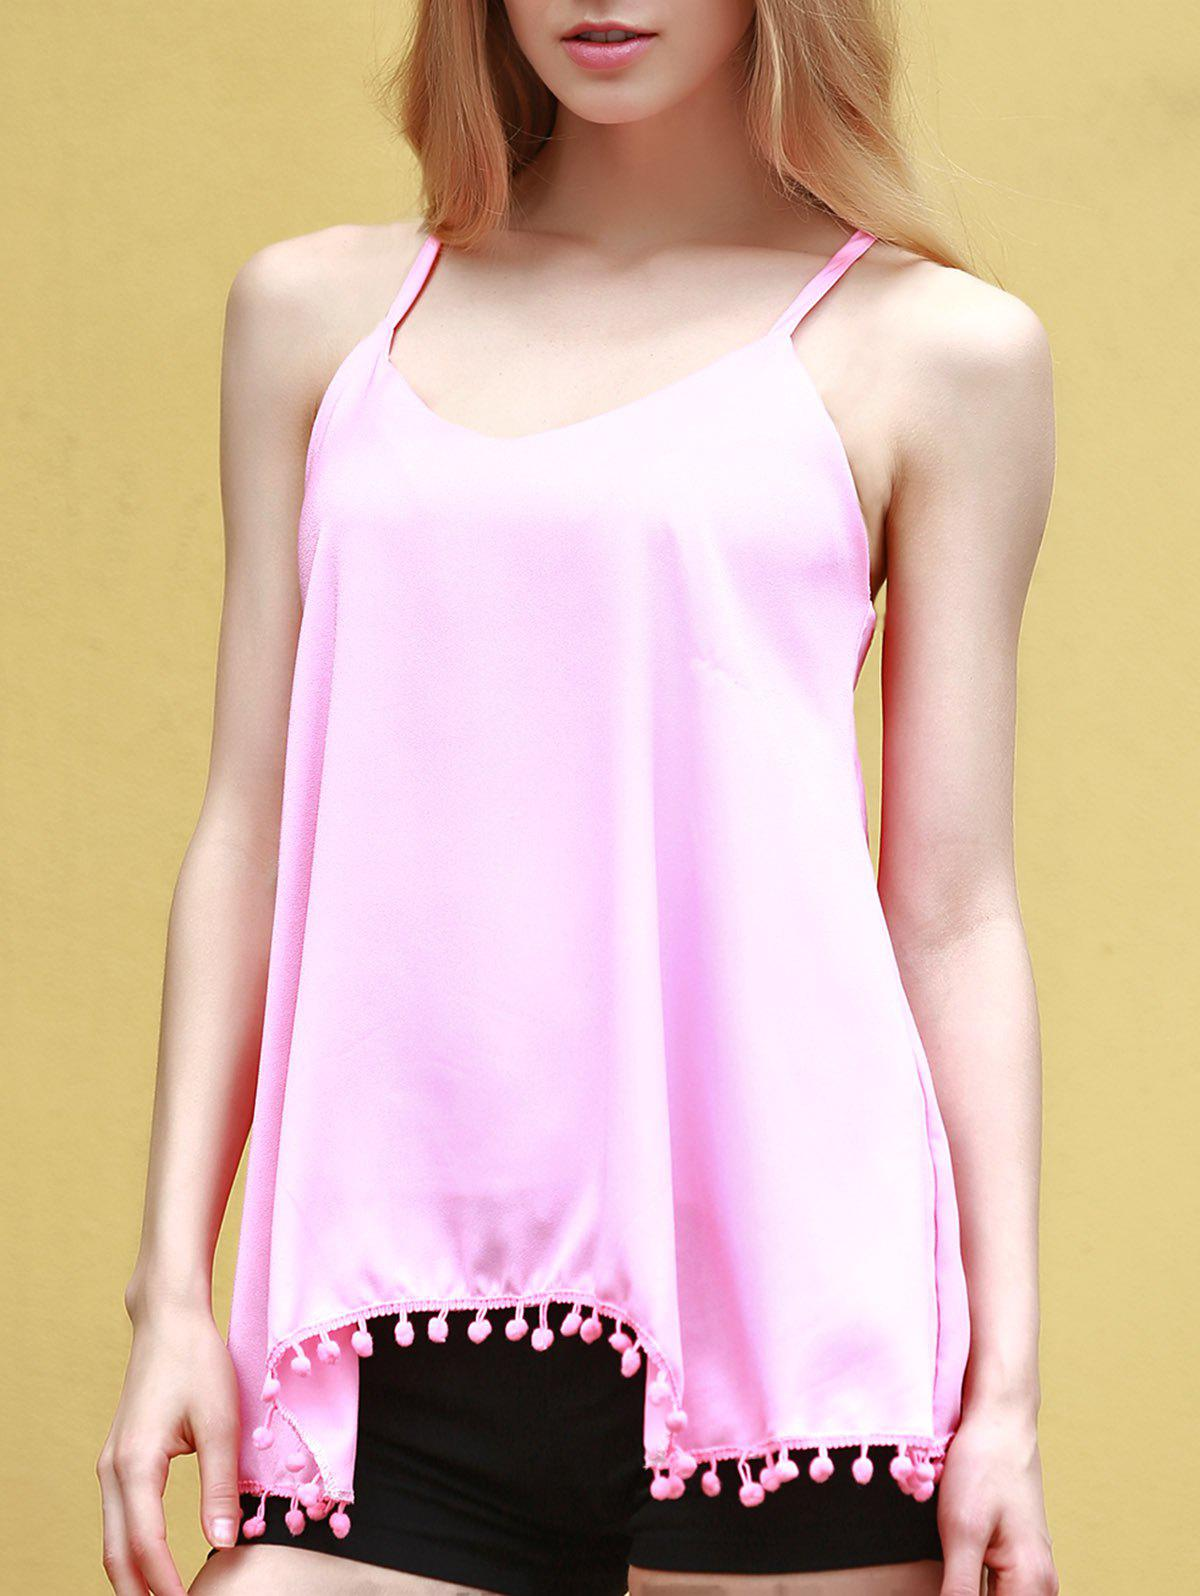 Endearing Pendant Design Solid Color Chiffon Tank Top For Women